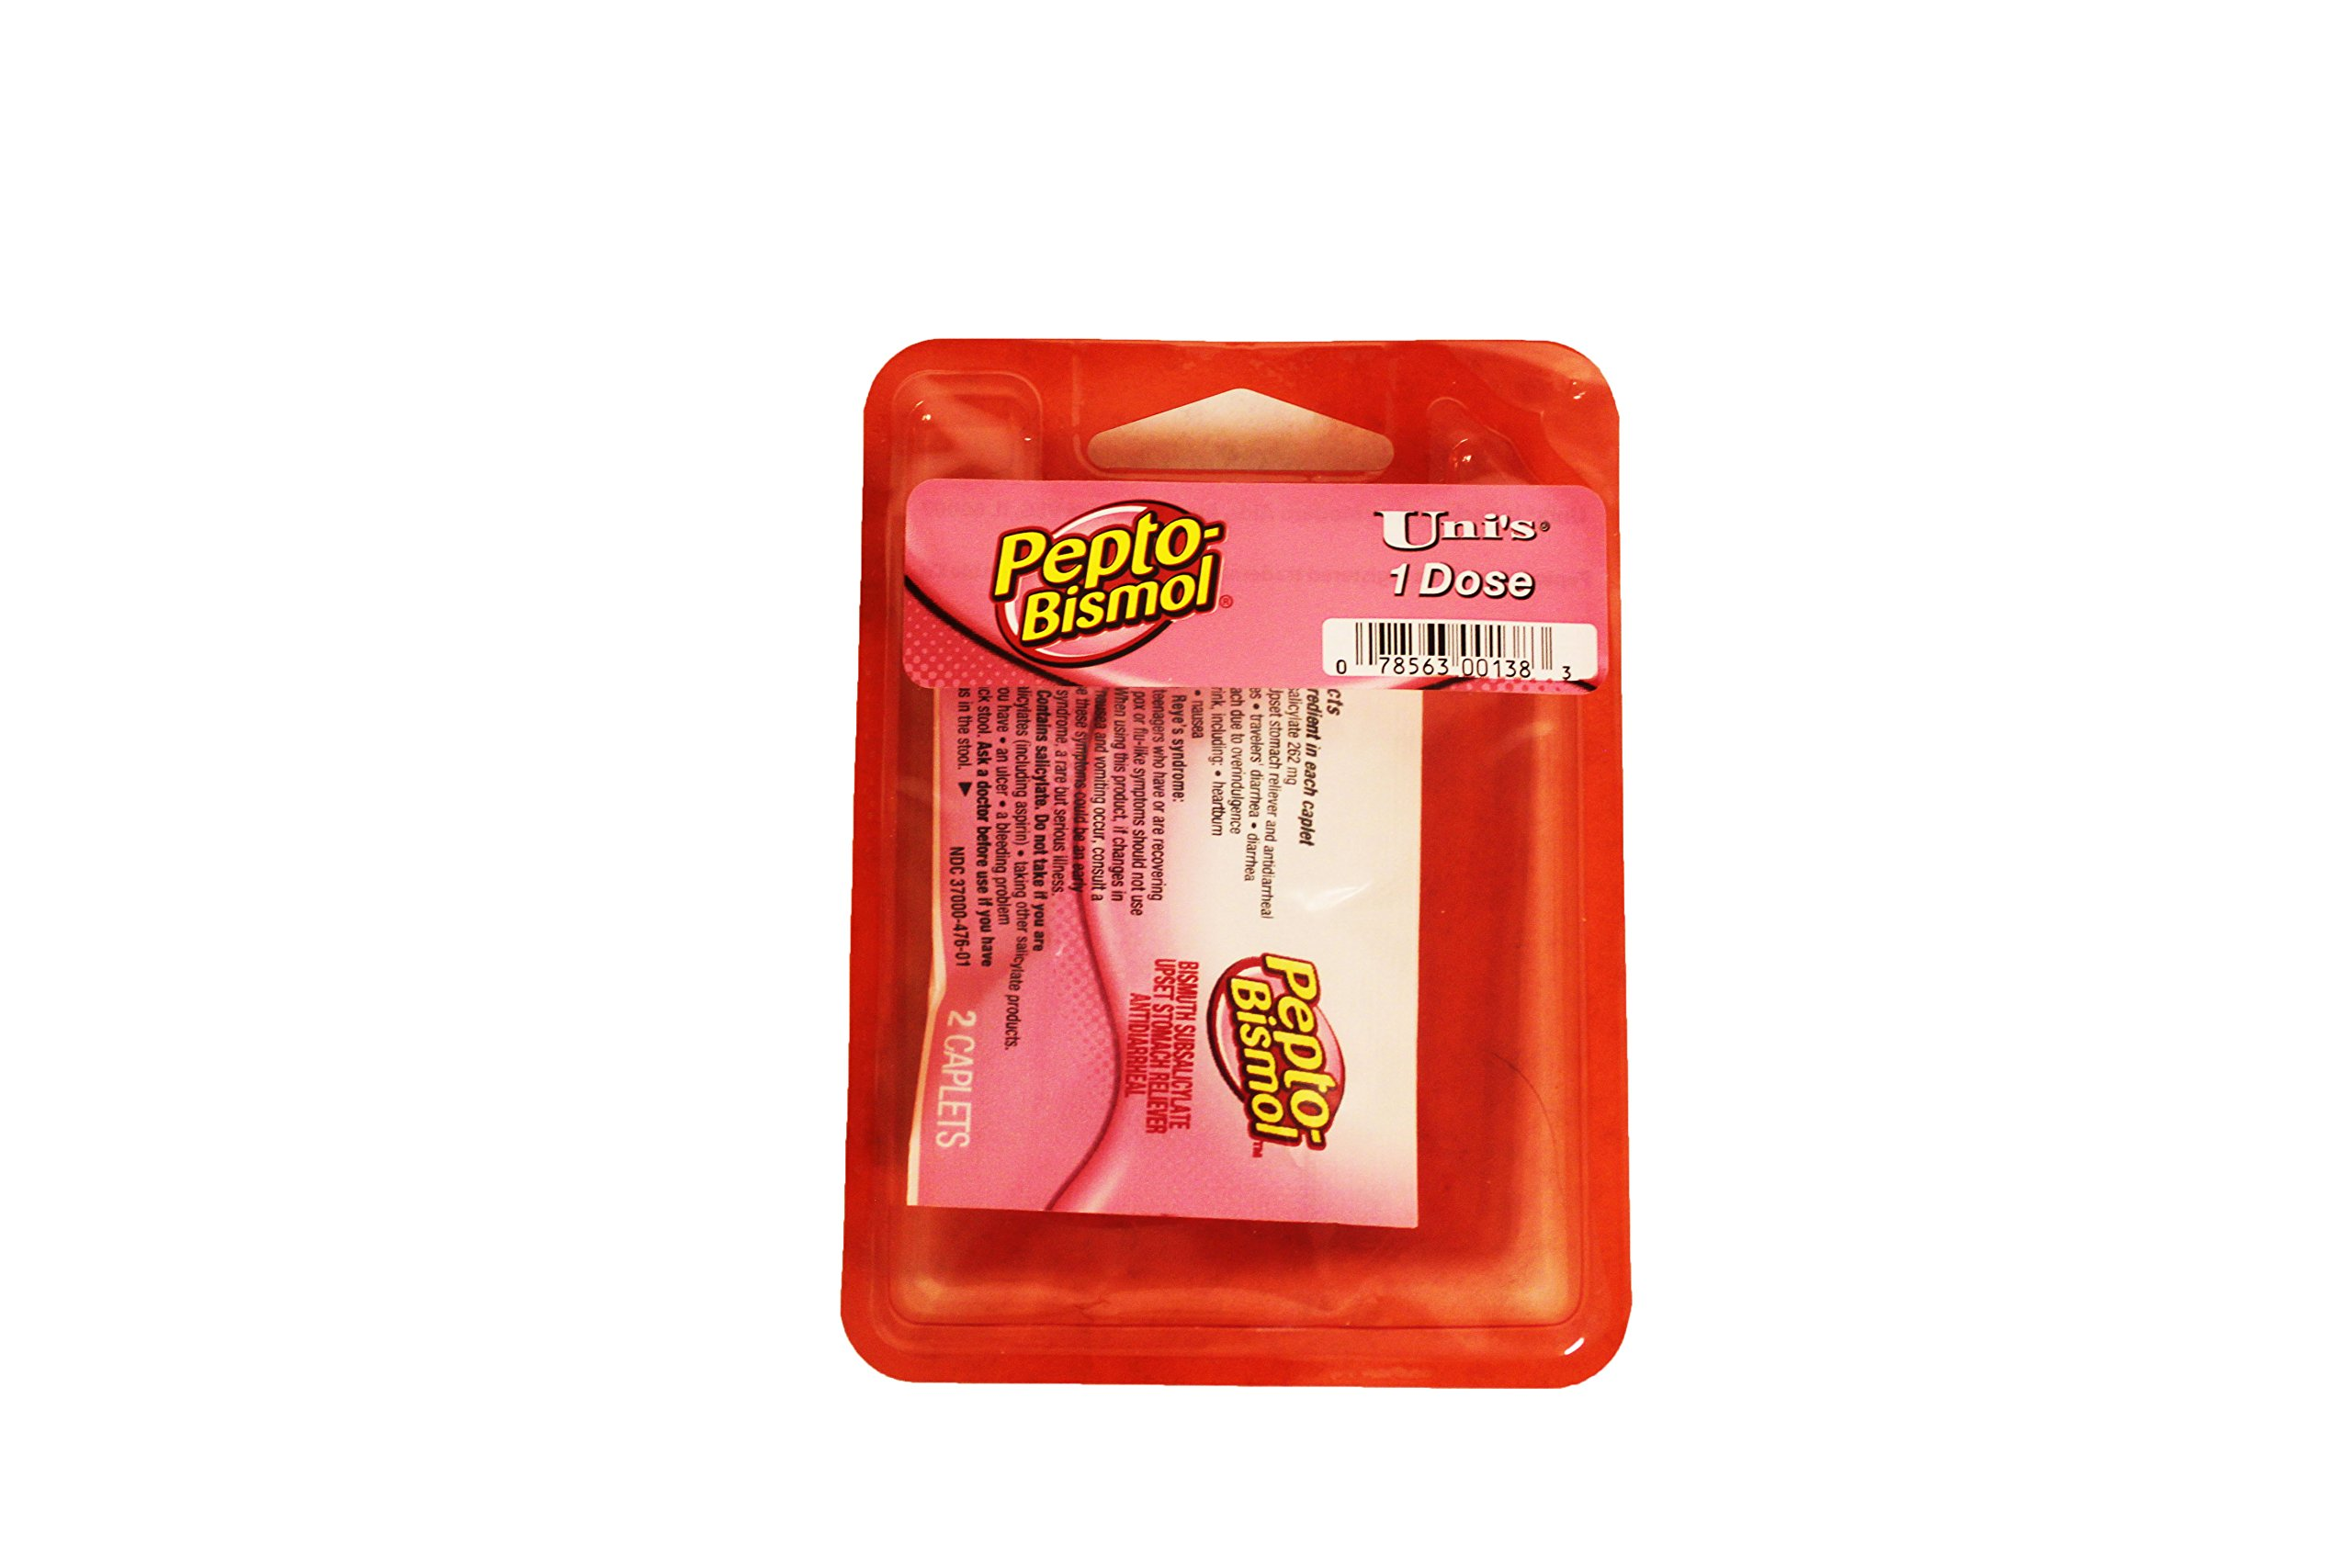 Pepto Bismol 6PK (2 Caplets Per Pack) Perfect for Travel and On-The-Go! Relieves Travelers' Diarrhea, Diarrhea and Upset Stomach, Including: Heartburn, Indigestion, Bloating, and Gas